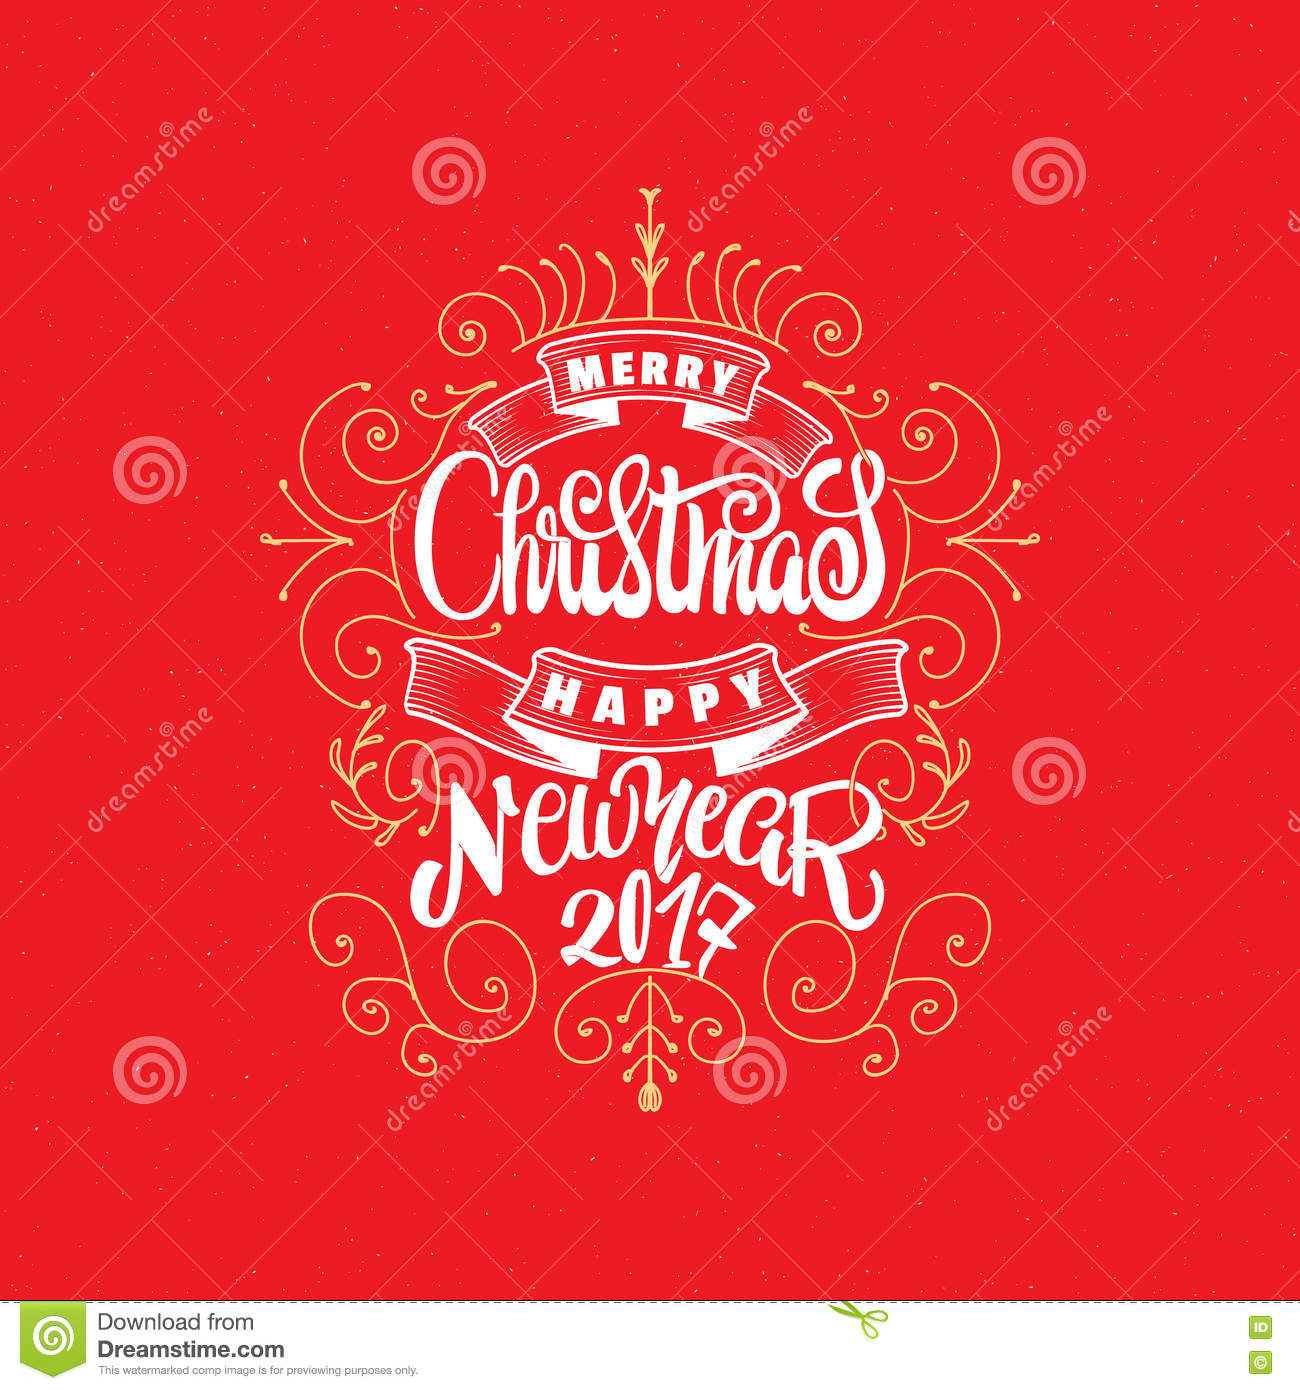 Merry Christmas And Happy New Year 2017 Hand Lettering Text